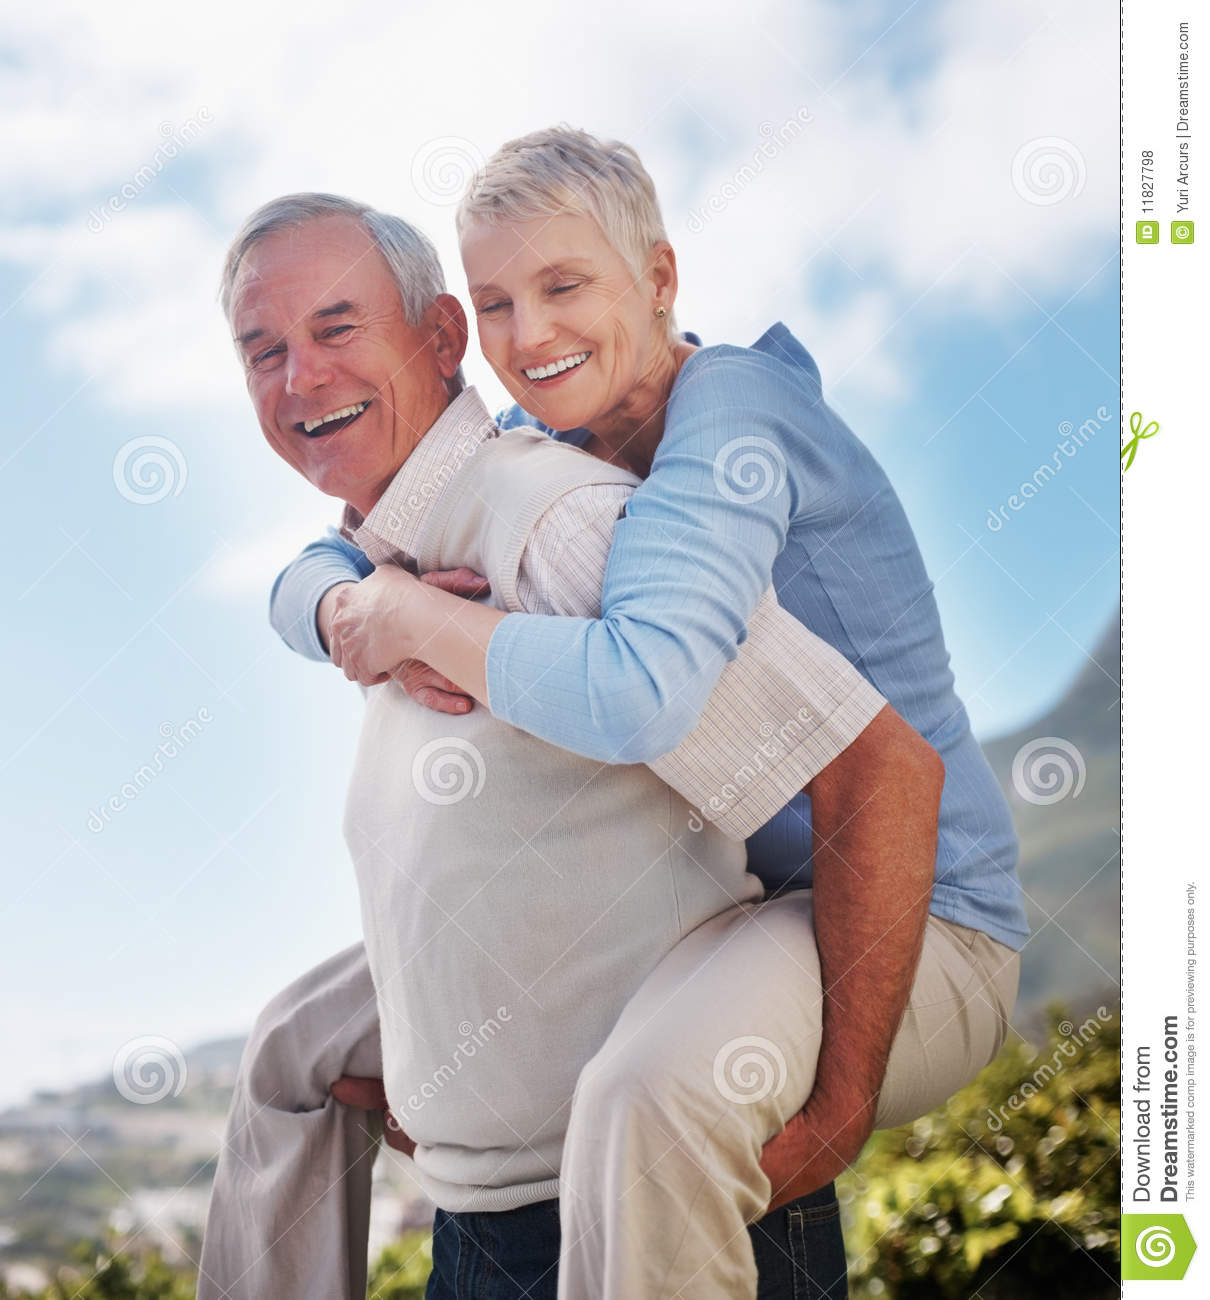 Happy Active Older Man Giving Woman Piggyback Ride Stock